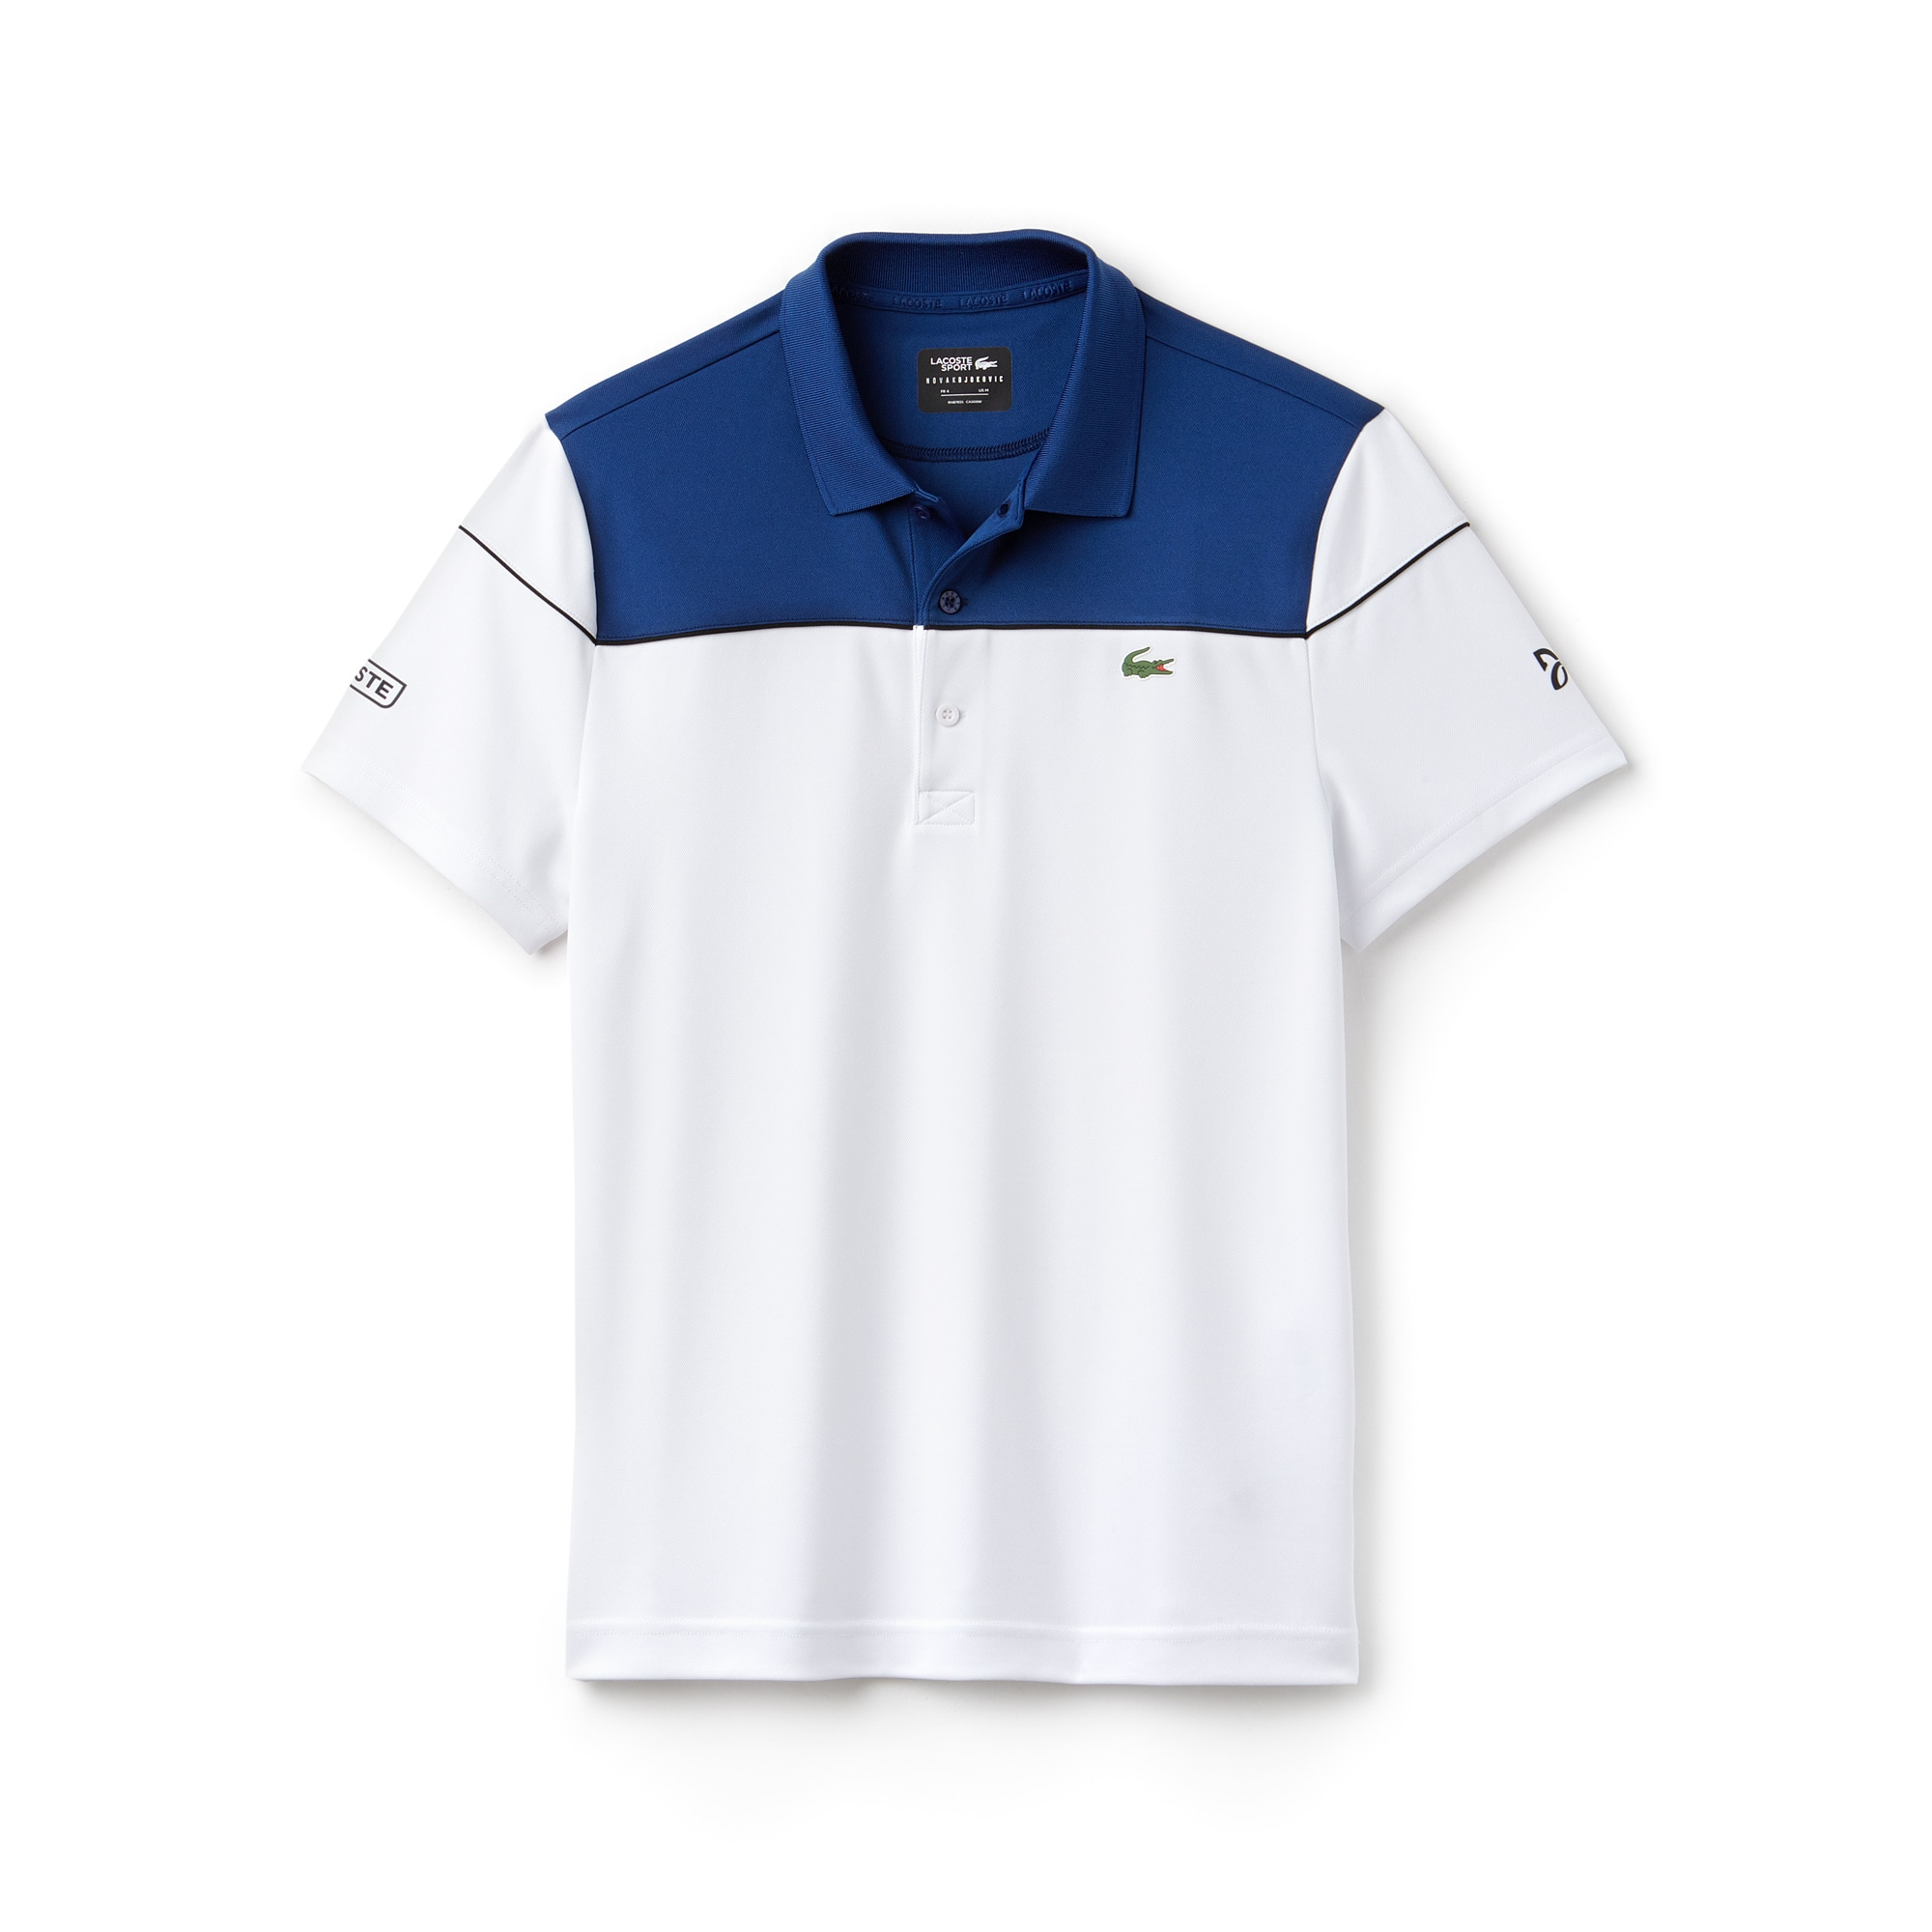 Men's LACOSTE SPORT NOVAK DJOKOVIC COLLECTION Colorblock Tech Piqué Polo Shirt